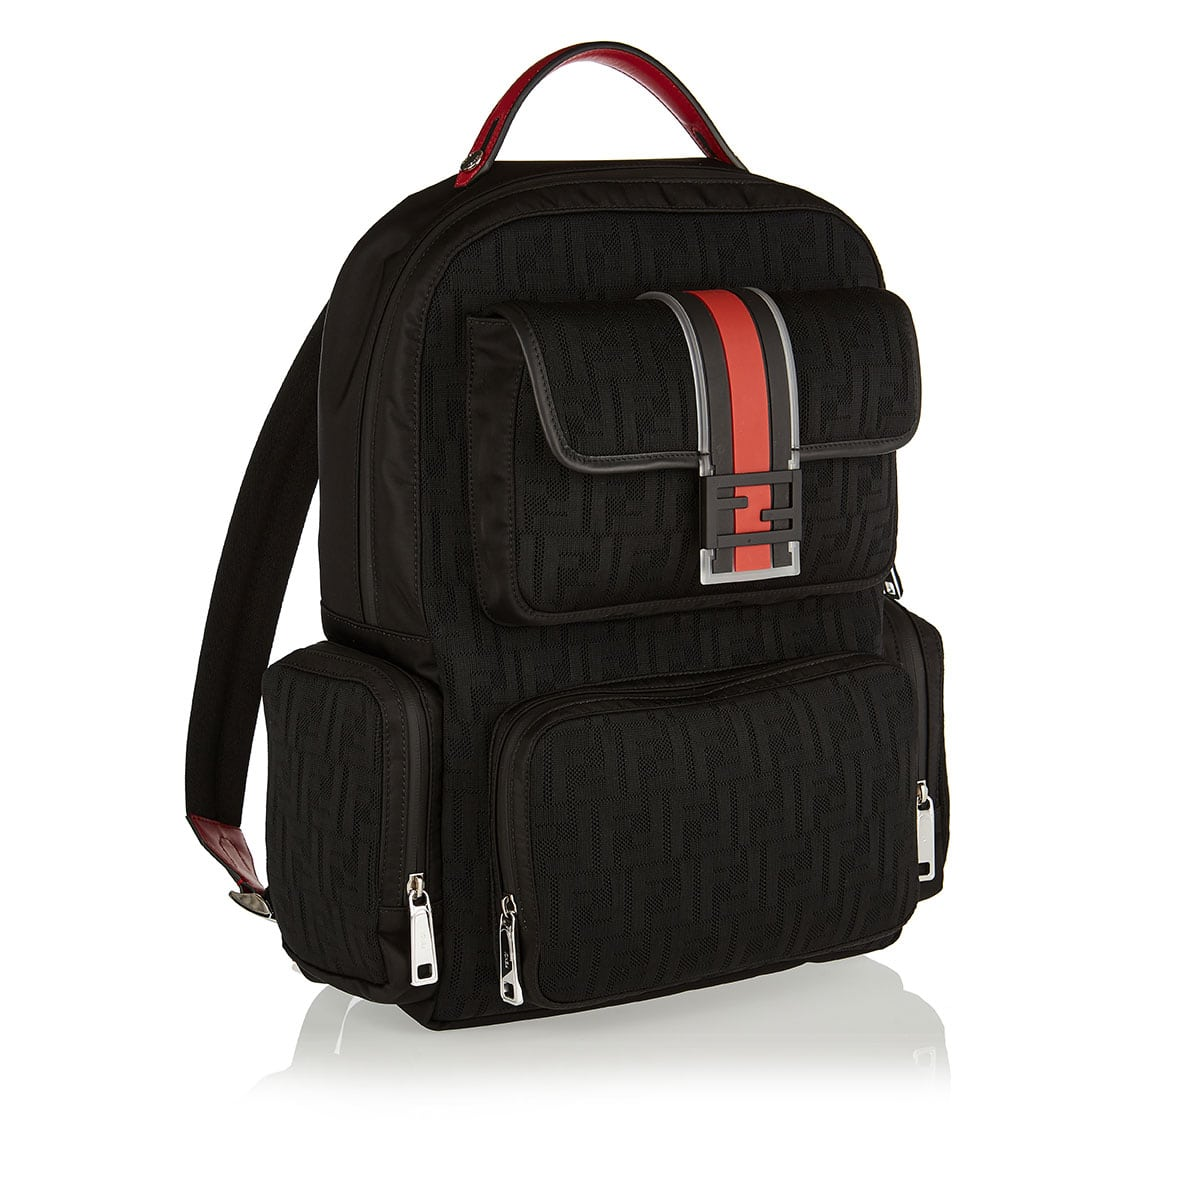 FF technical fabric backpack